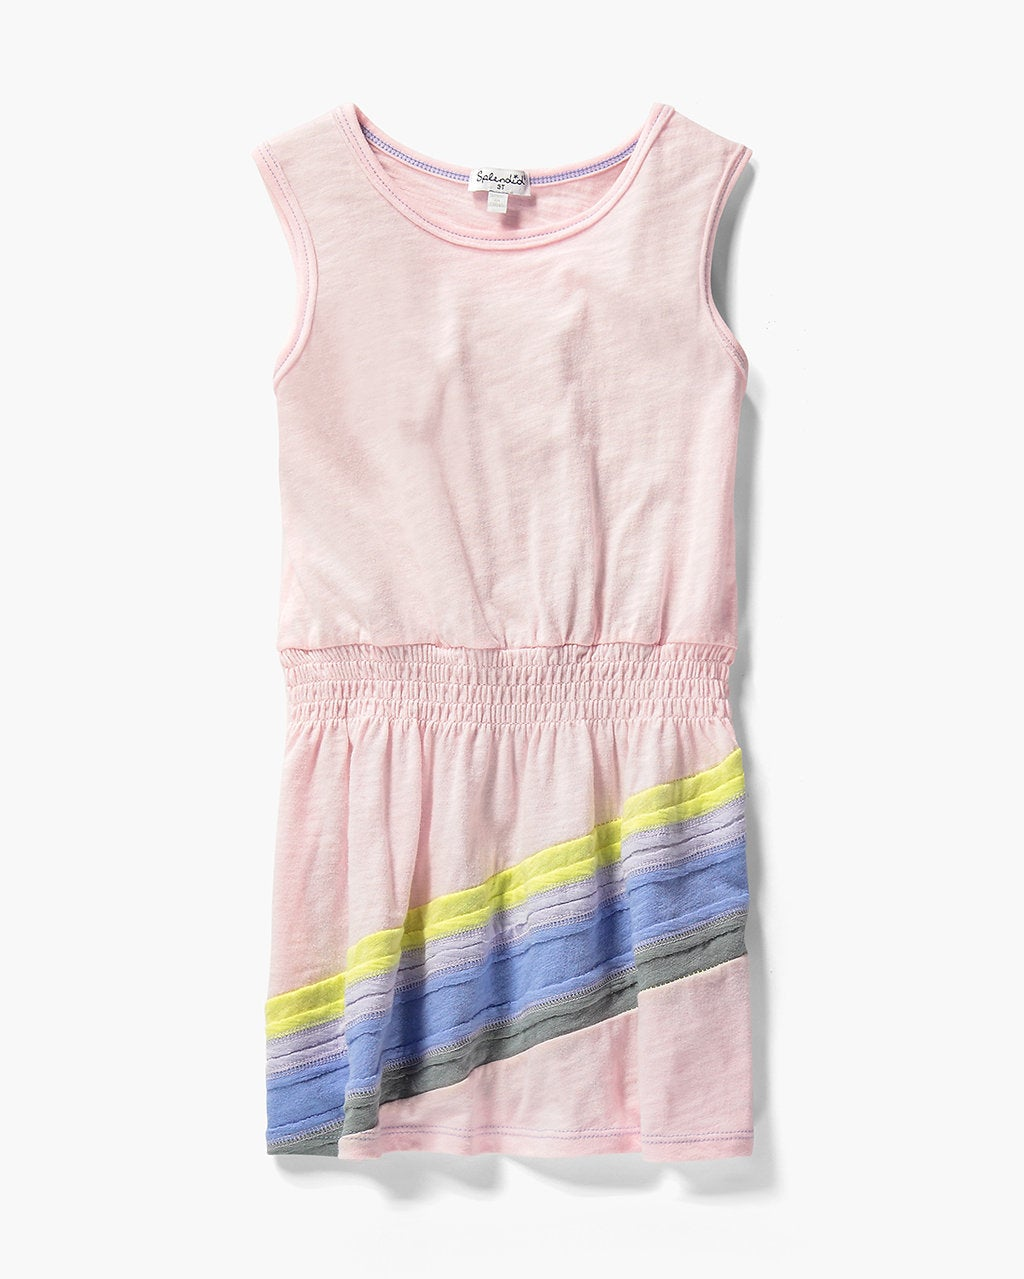 Splendid Little Girl Rainbow Dress